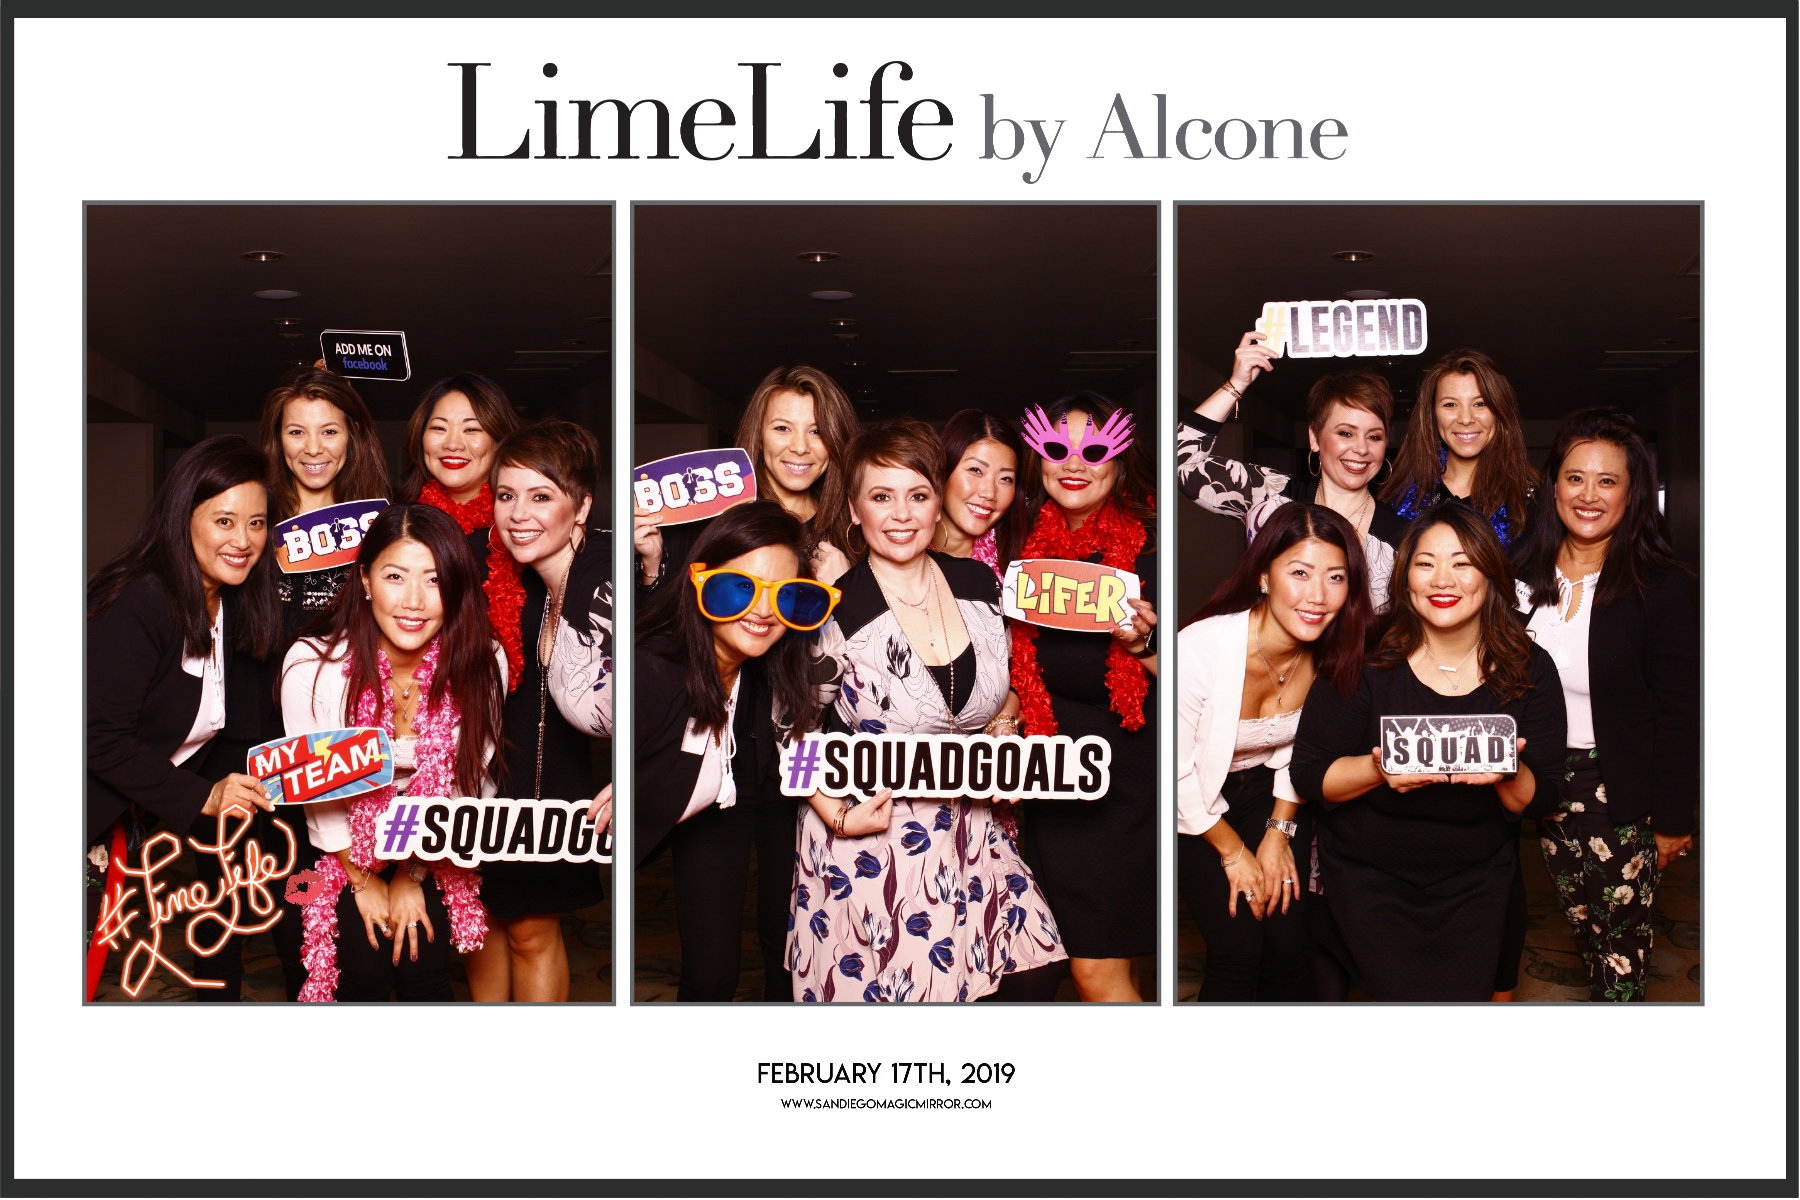 Magic Mirror Photo Booth at LimeLife Westin Gaslamp Quarter